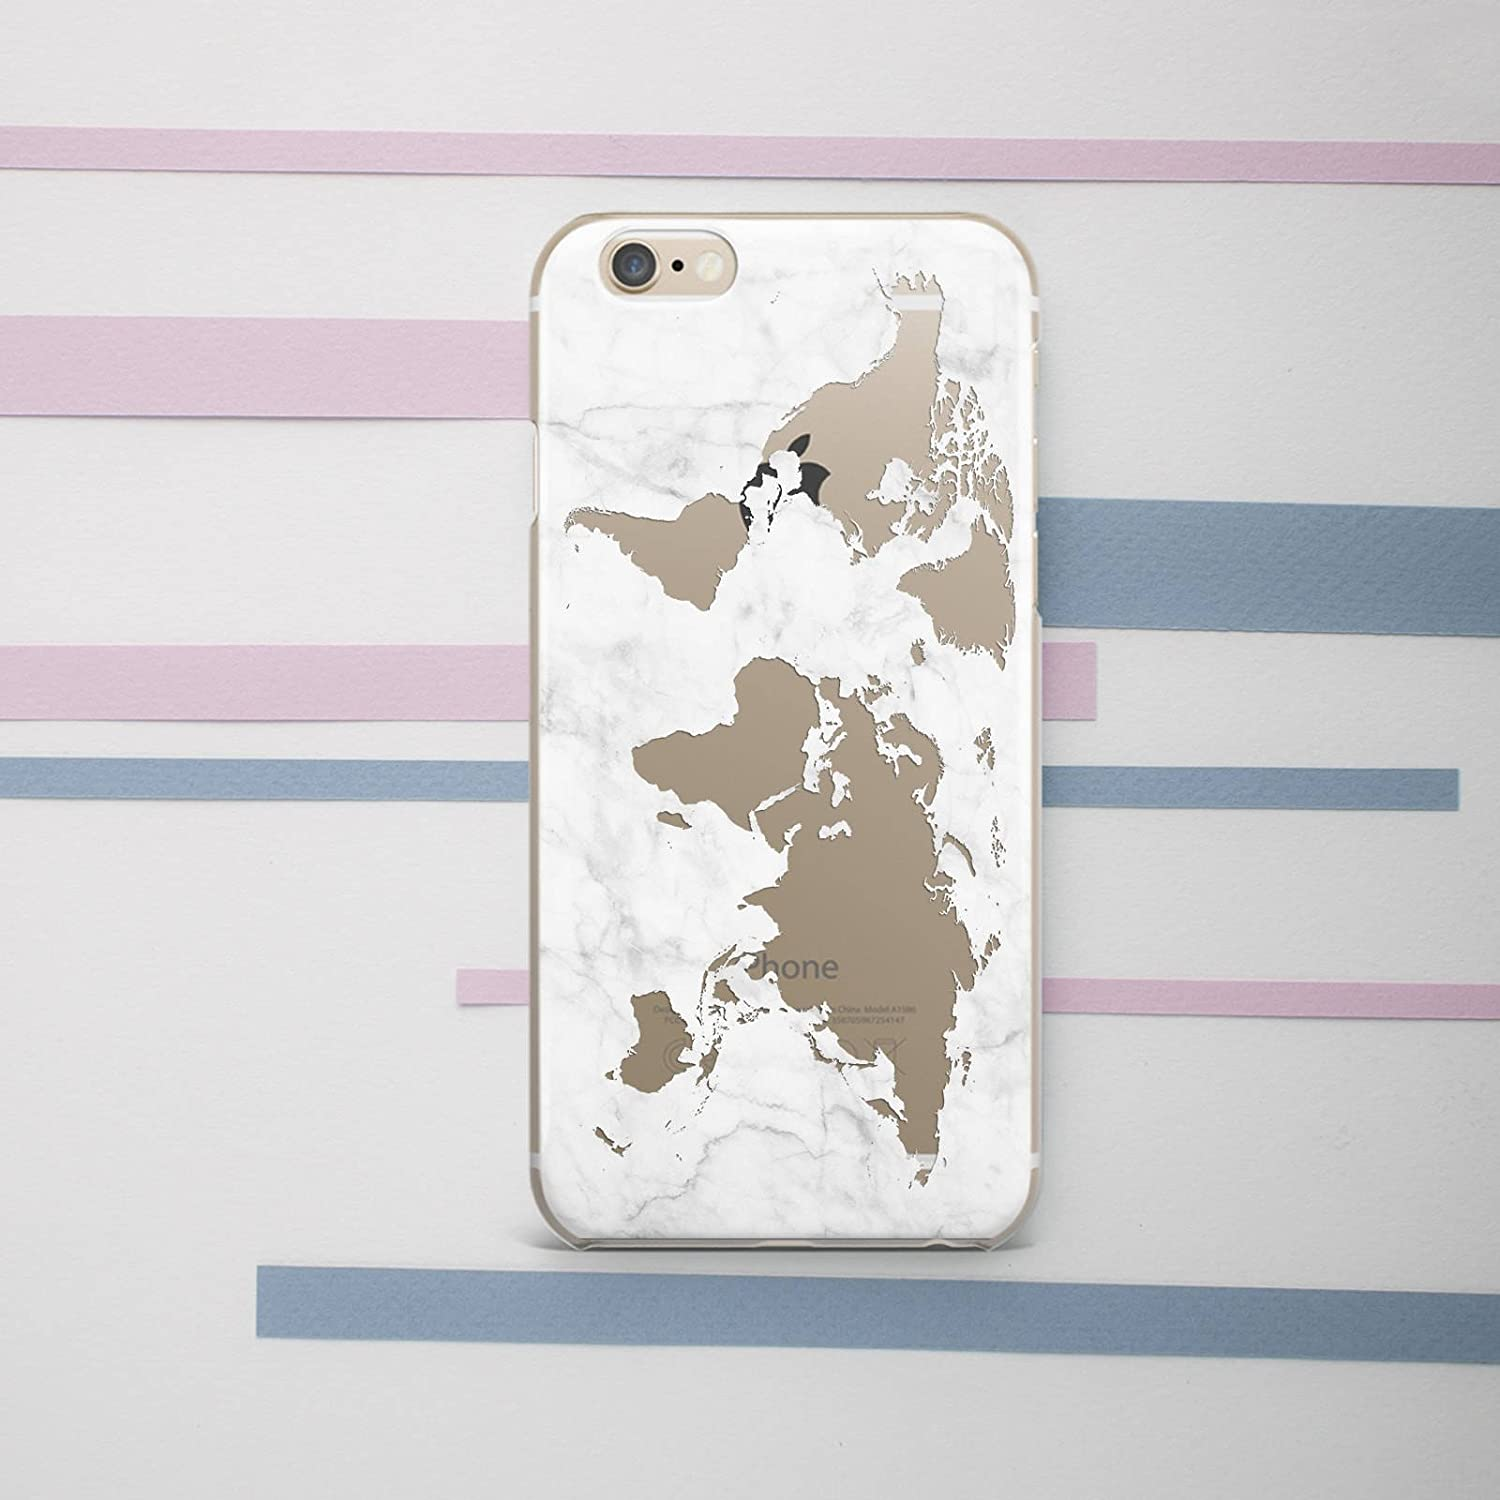 Amazon.com: bagparadise mapa del mundo mármol iPhone funda ...